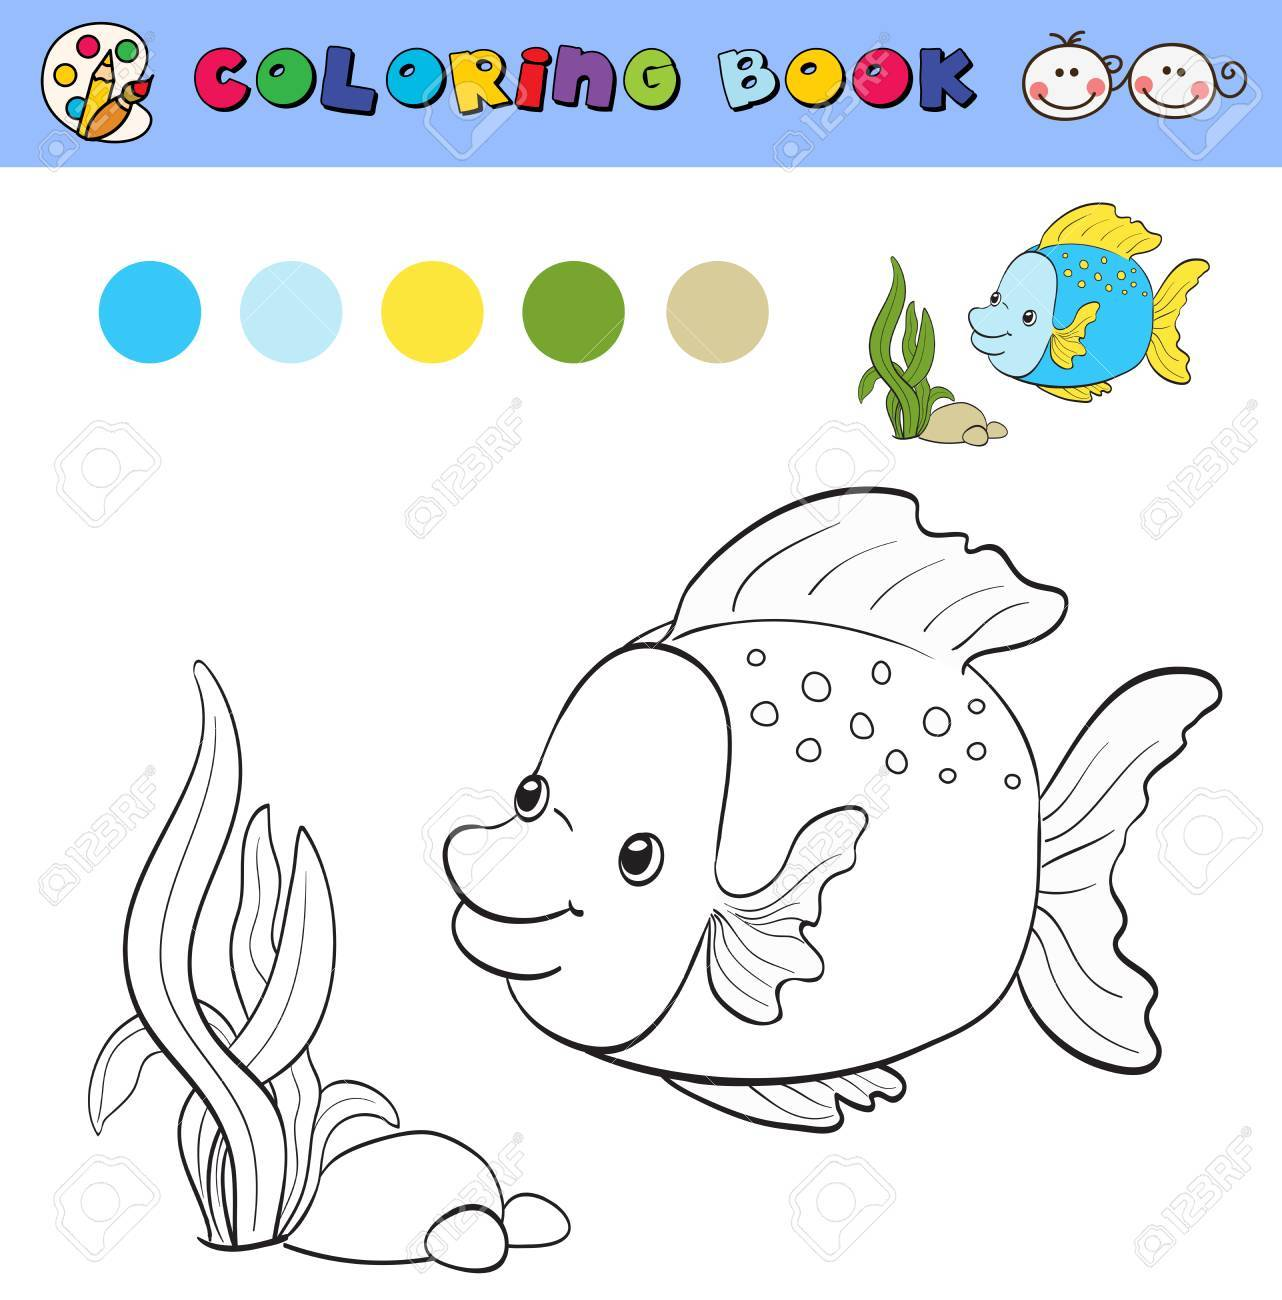 Coloring Book Page Template With Tropical Fish And Plants Color Samples Vector Illustraton Stock